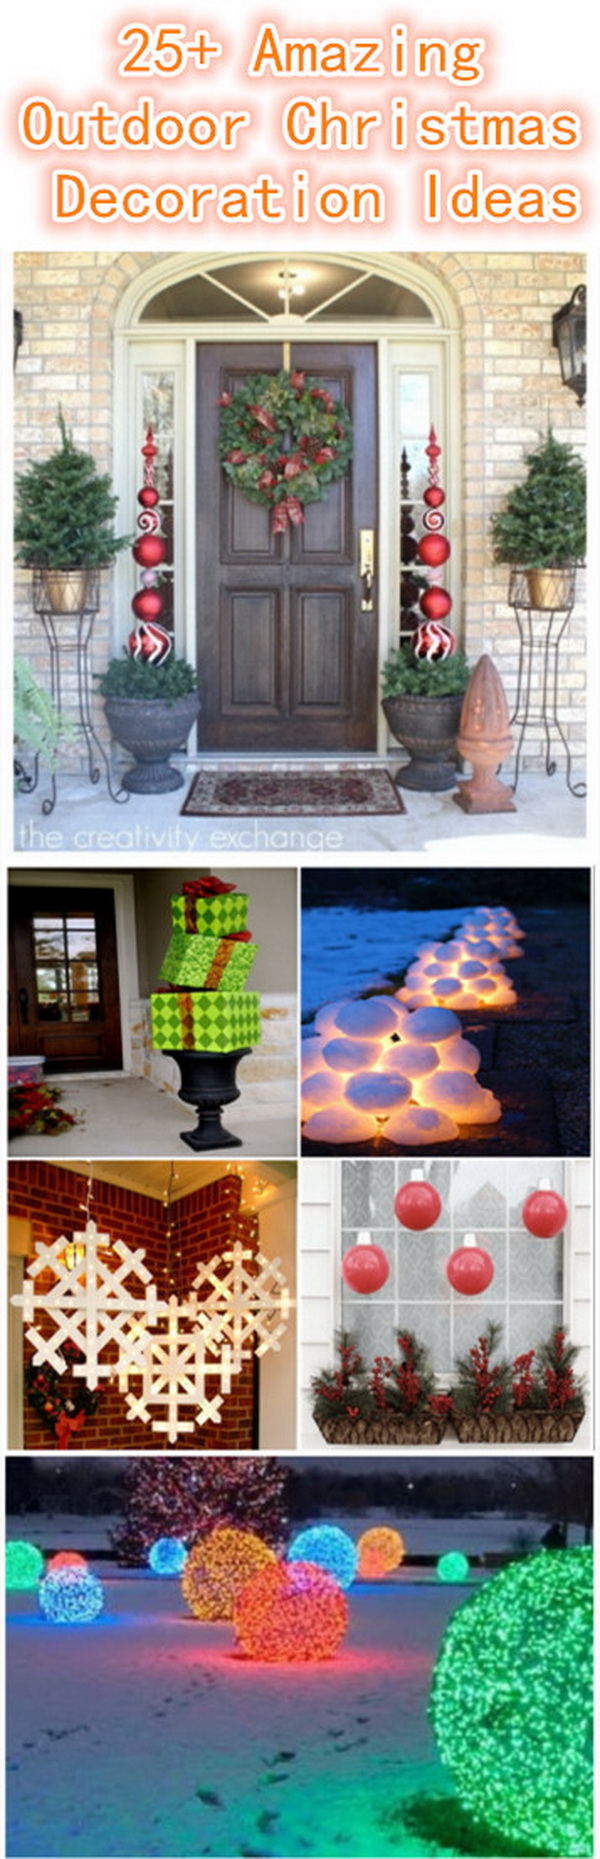 25 amazing diy outdoor christmas decoration ideas christmas holiday is one of the most